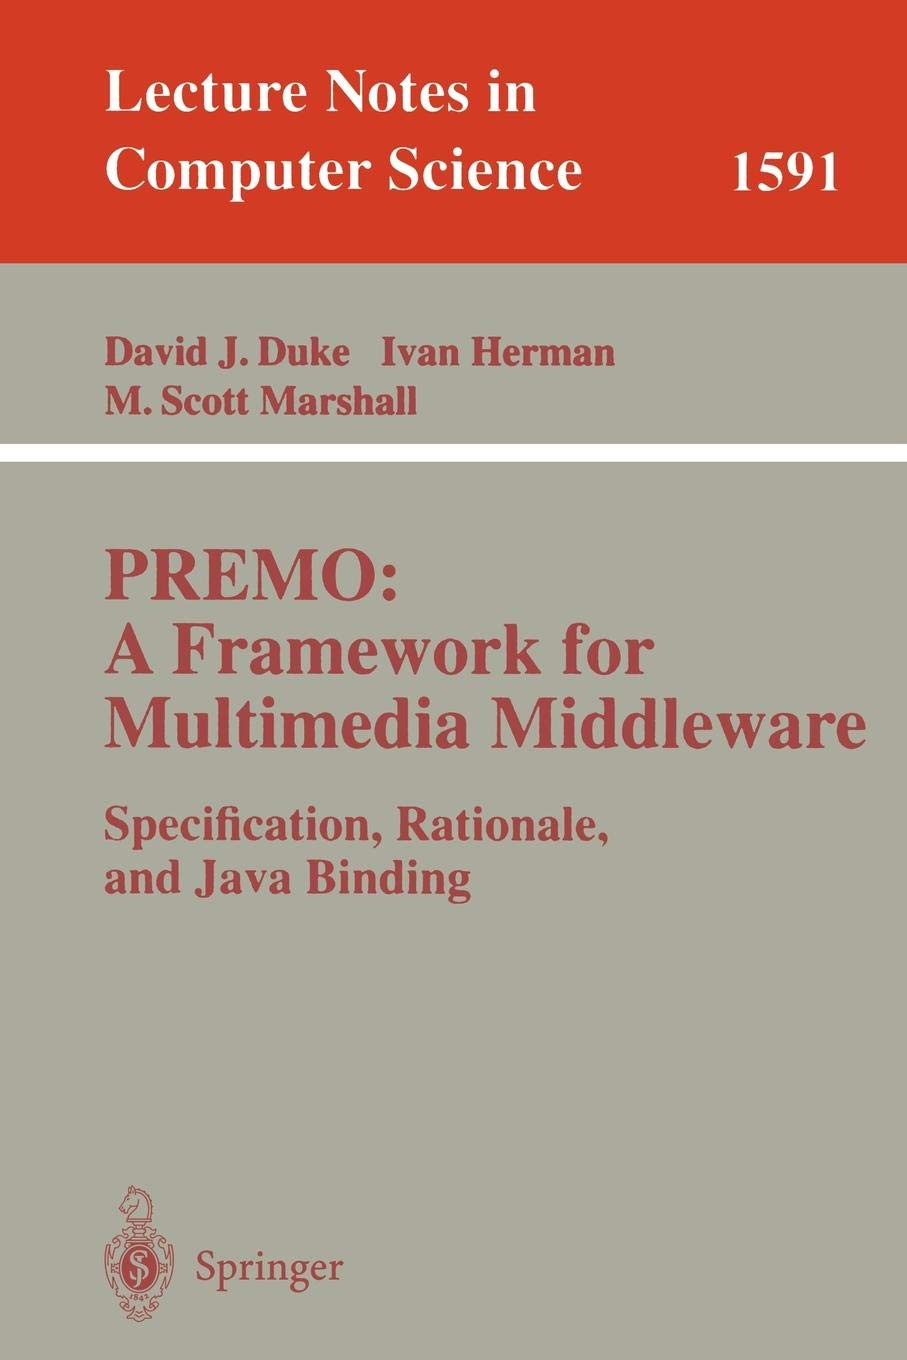 PREMO: A Framework for Multimedia Middleware: Specification